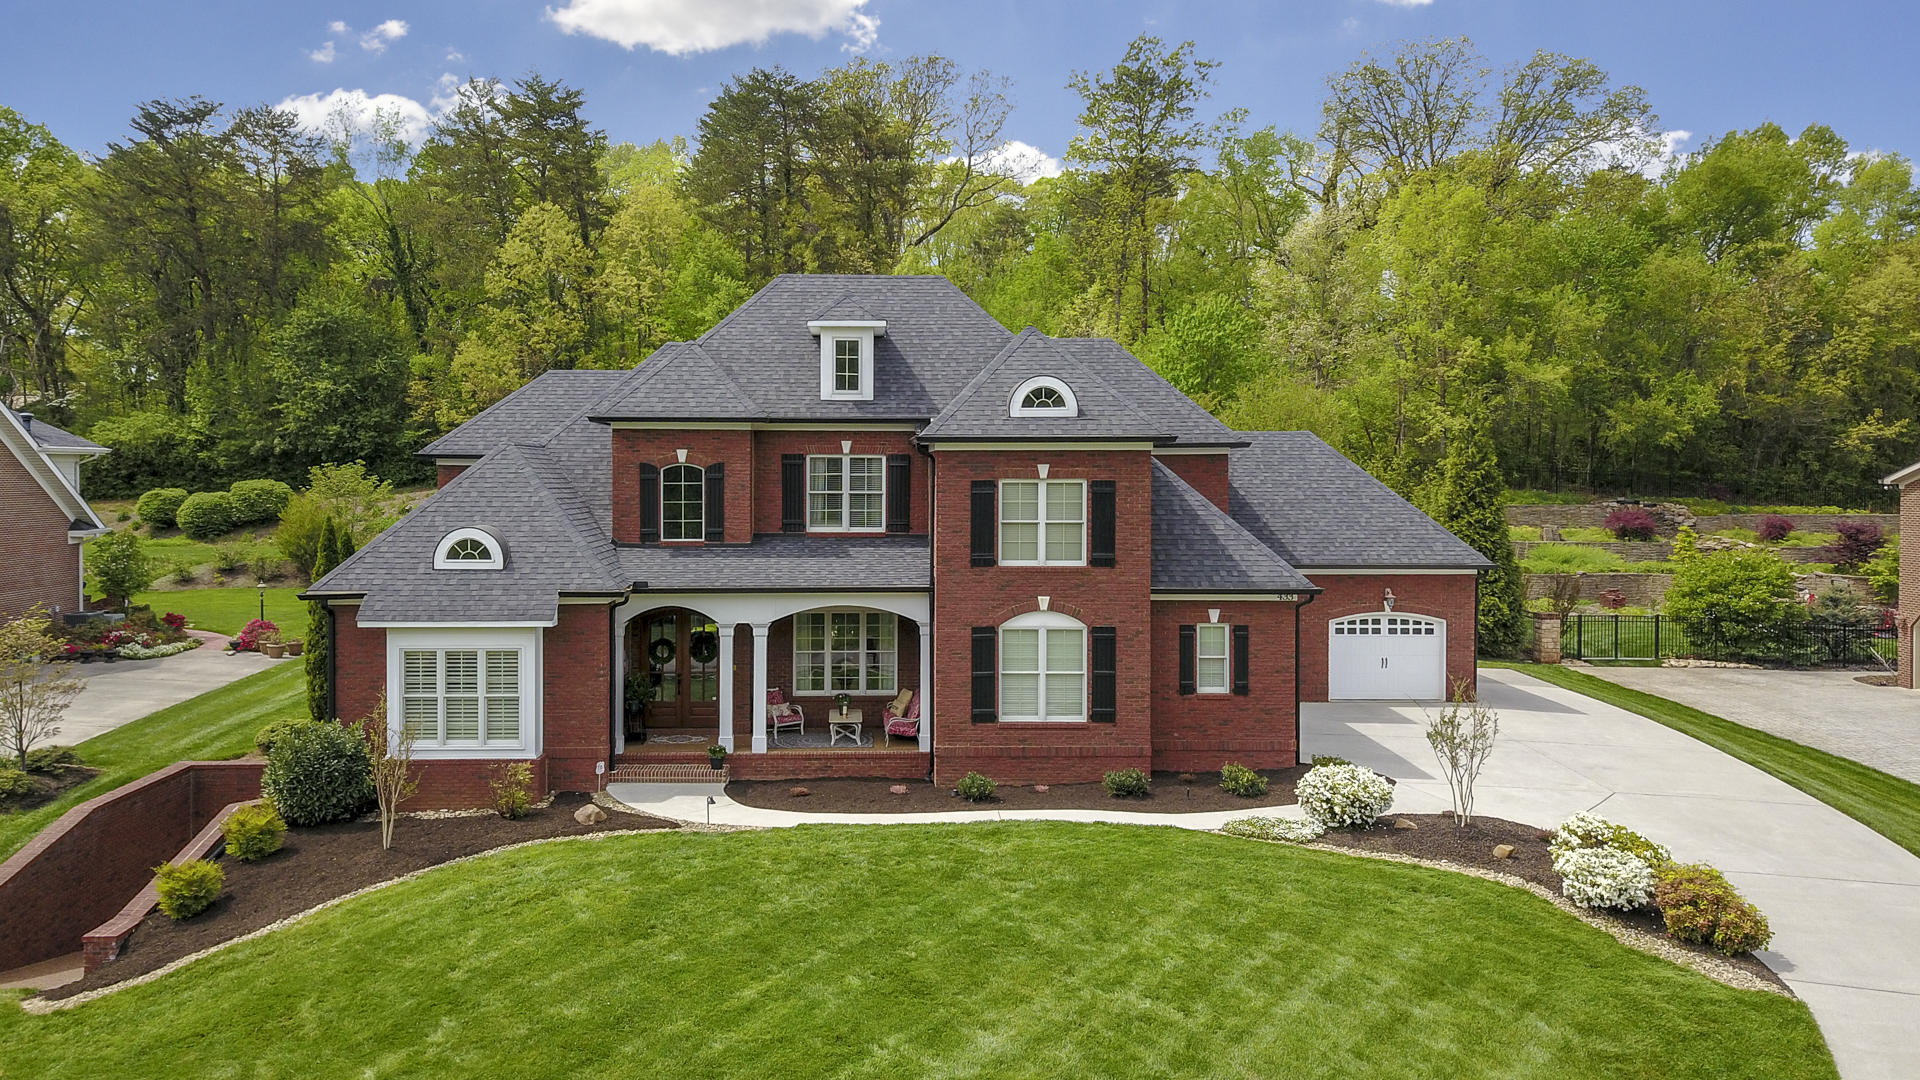 Magnificent 433 Broadmoor Drive Maryville Tn 37803 Leconte Realty Download Free Architecture Designs Intelgarnamadebymaigaardcom